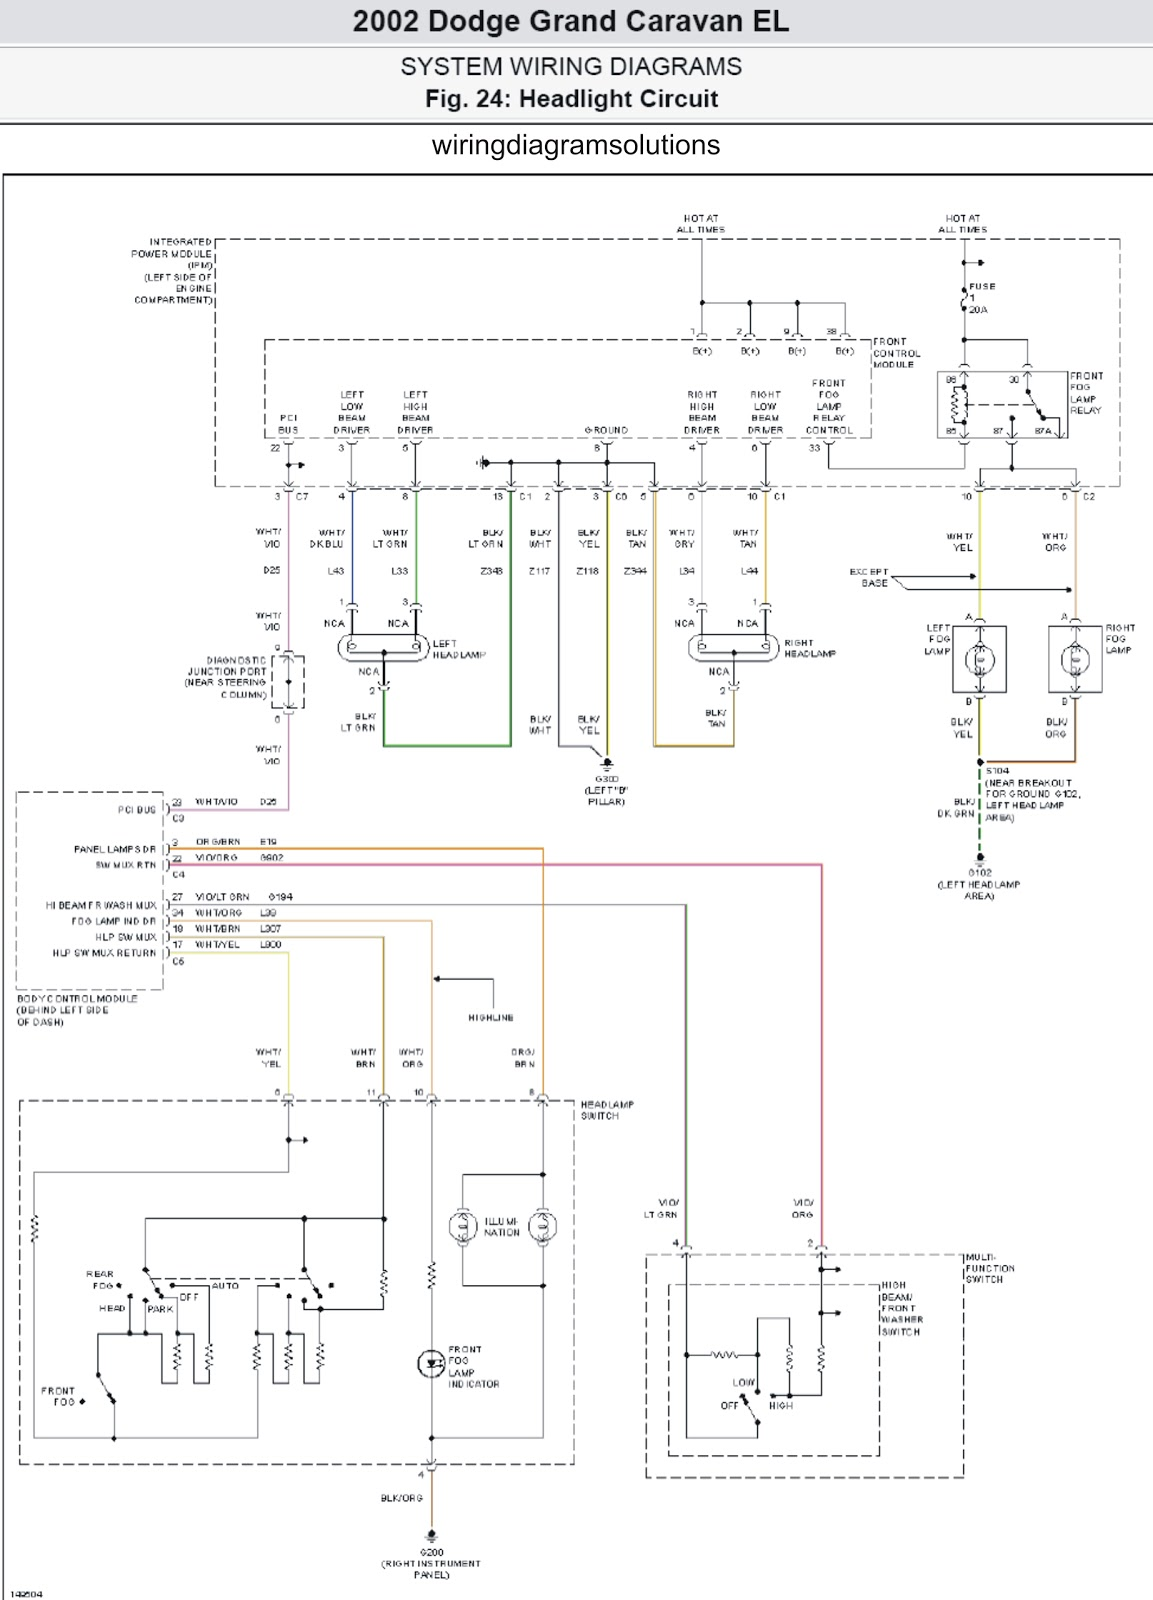 2002+dodge+caravan+Headlight+Circuit 02 caravan starter wiring diagram square d motor starter wiring High Voltage Wiring at soozxer.org